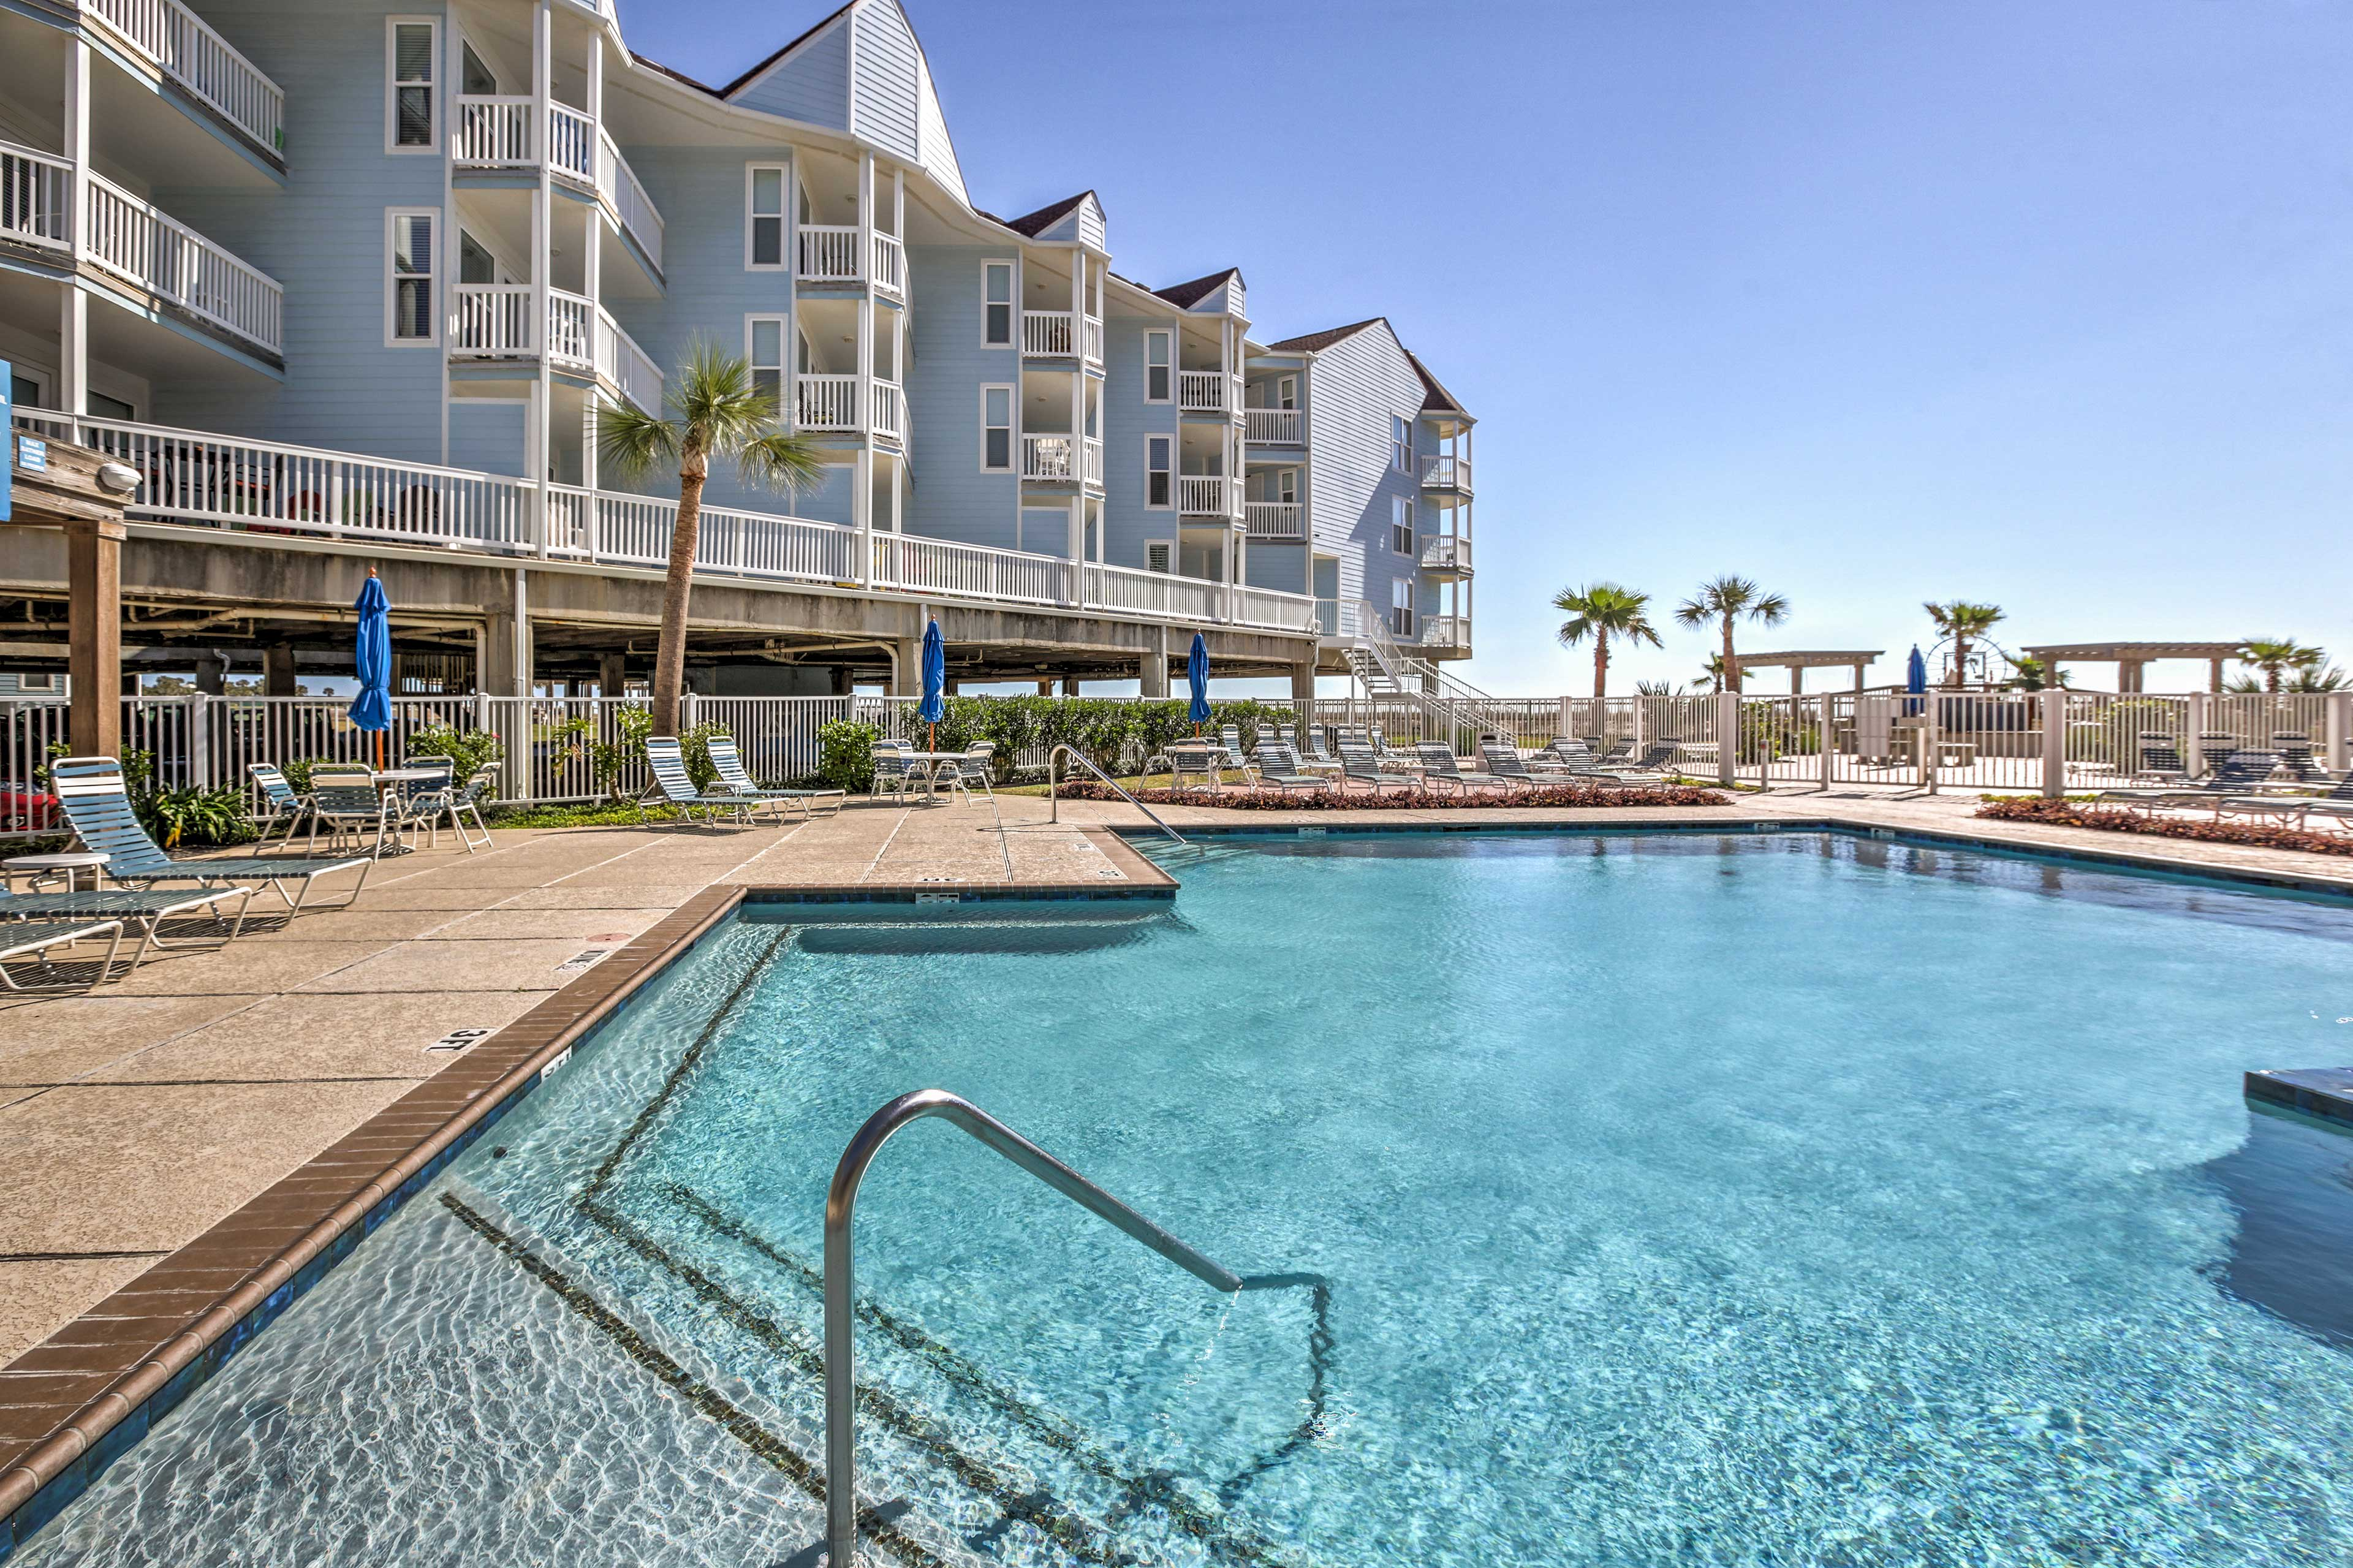 The beachfront location is only made better by the lavish community amenities!